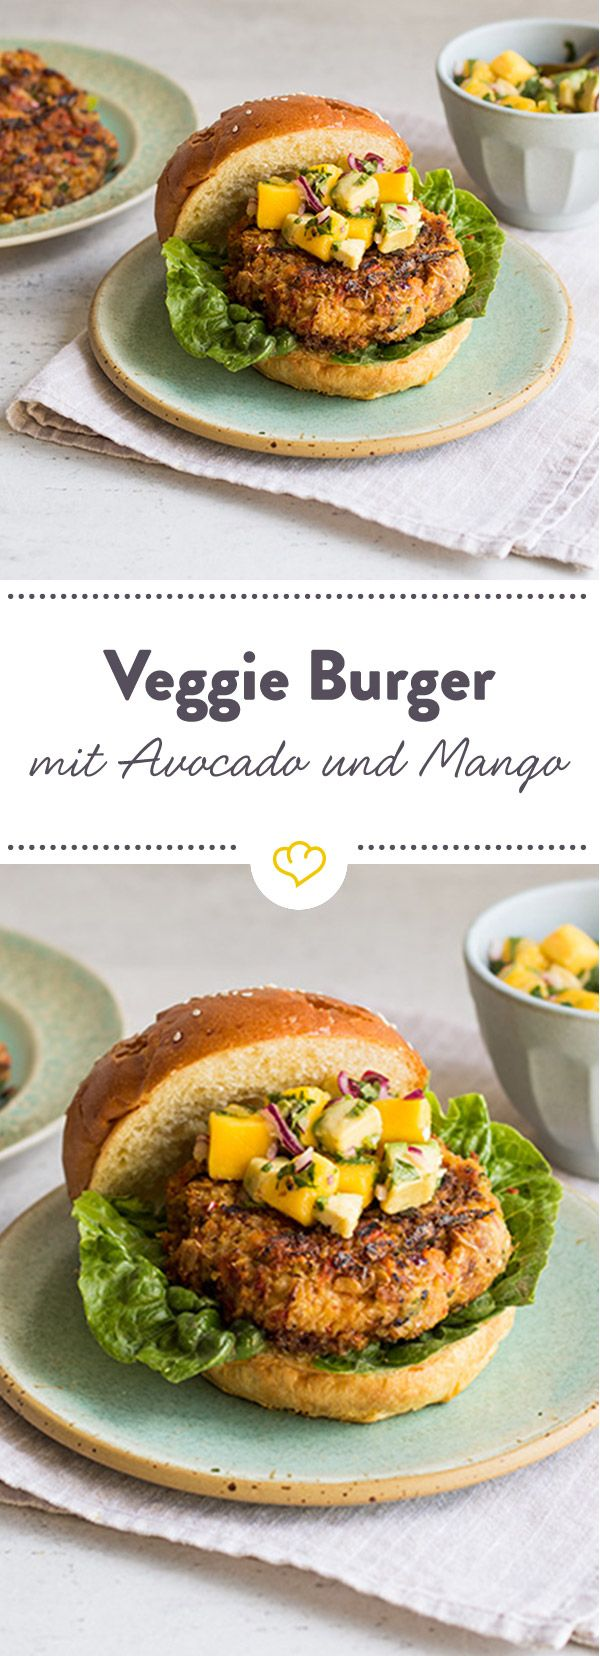 Vegetarischer Burger mit Avocado-Mango-Topping